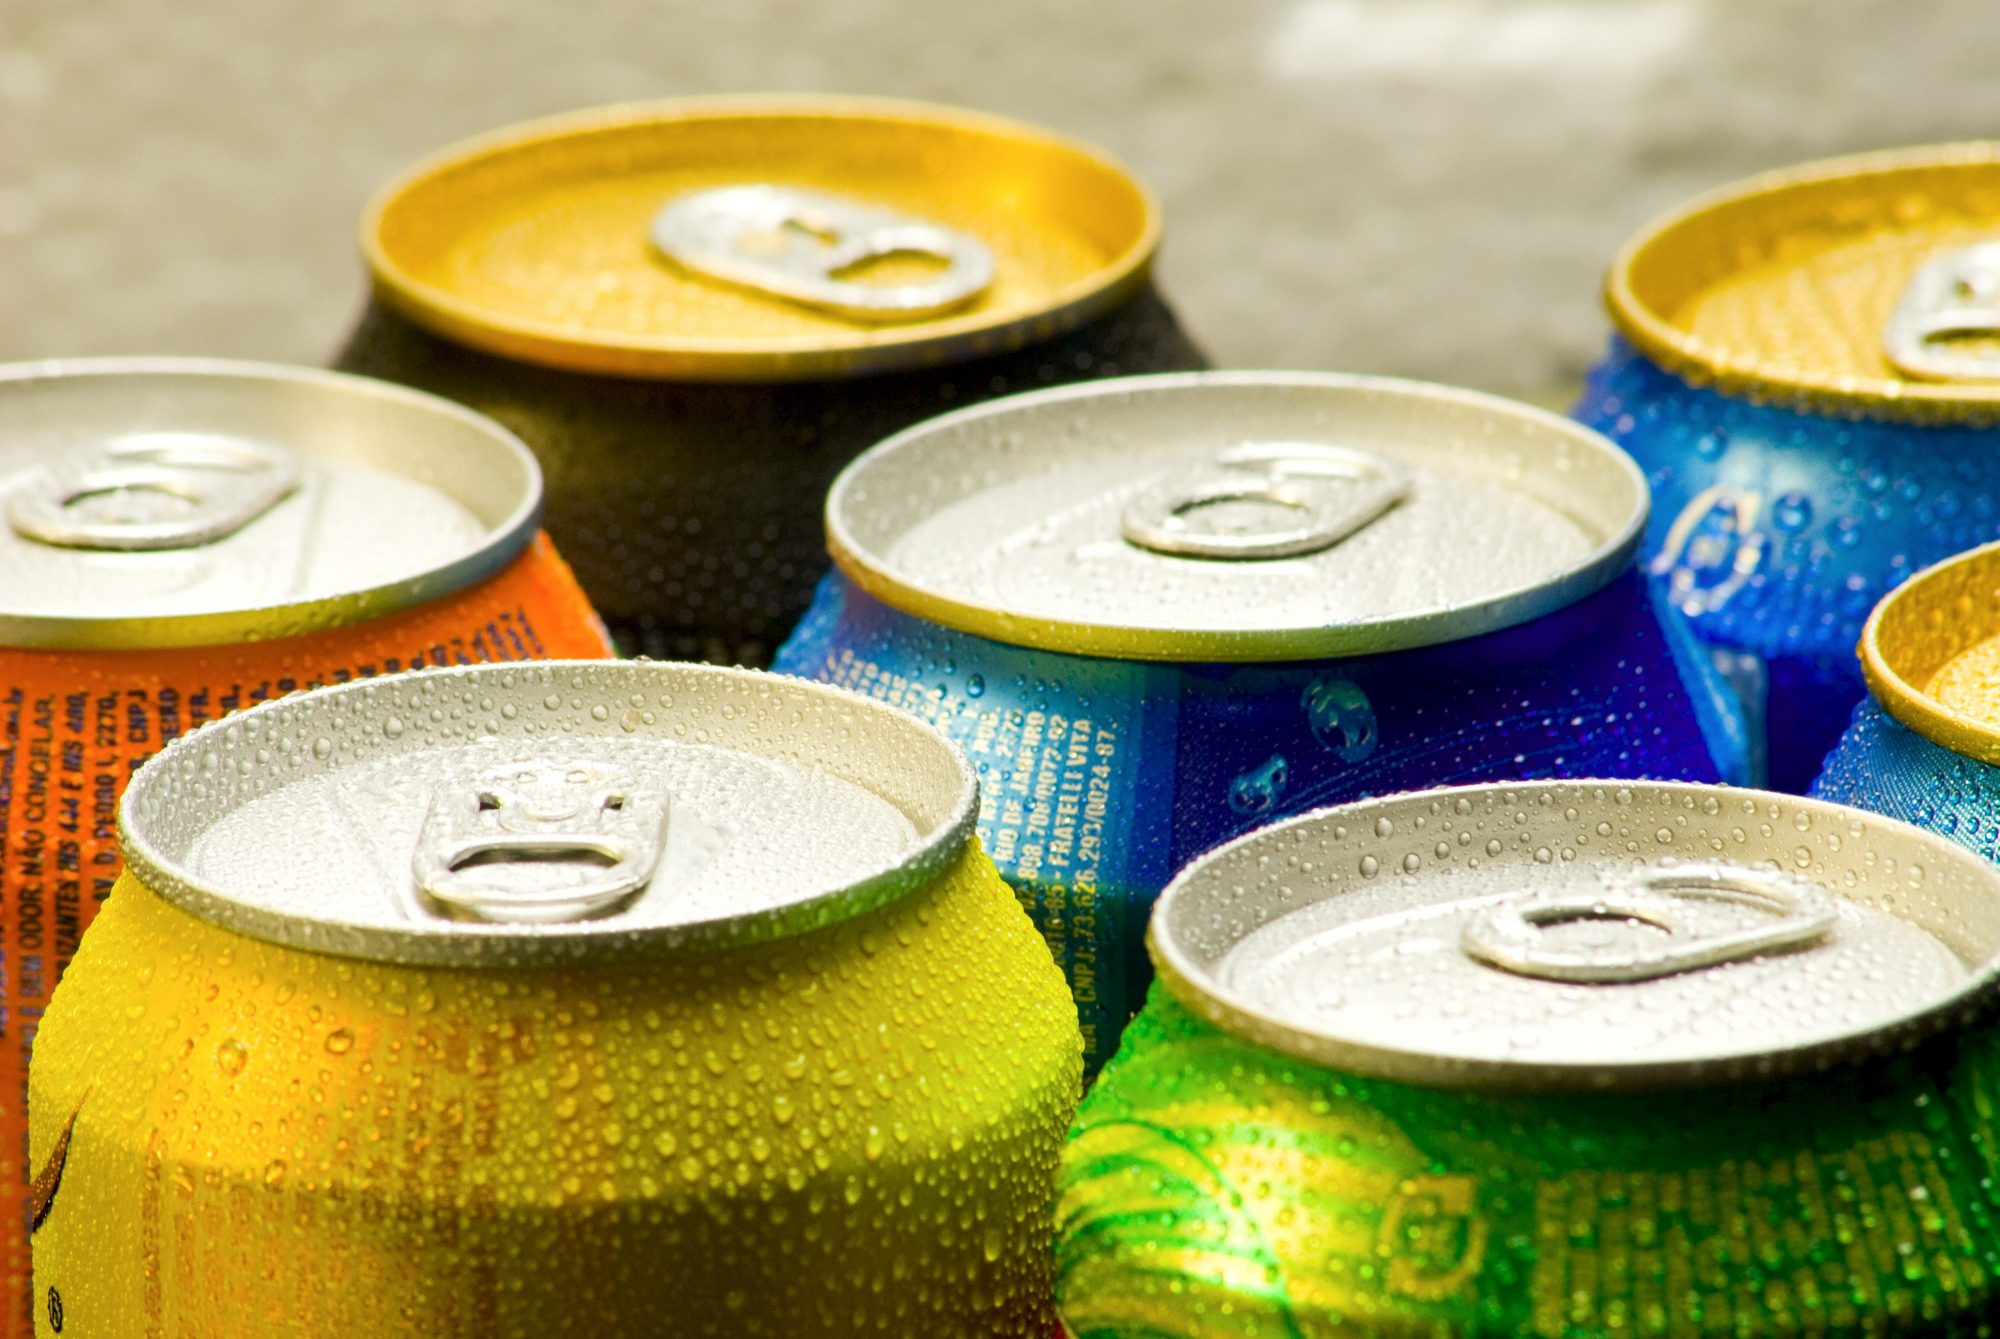 France Is Banning Unlimited Soda Refills to Fight Obesity